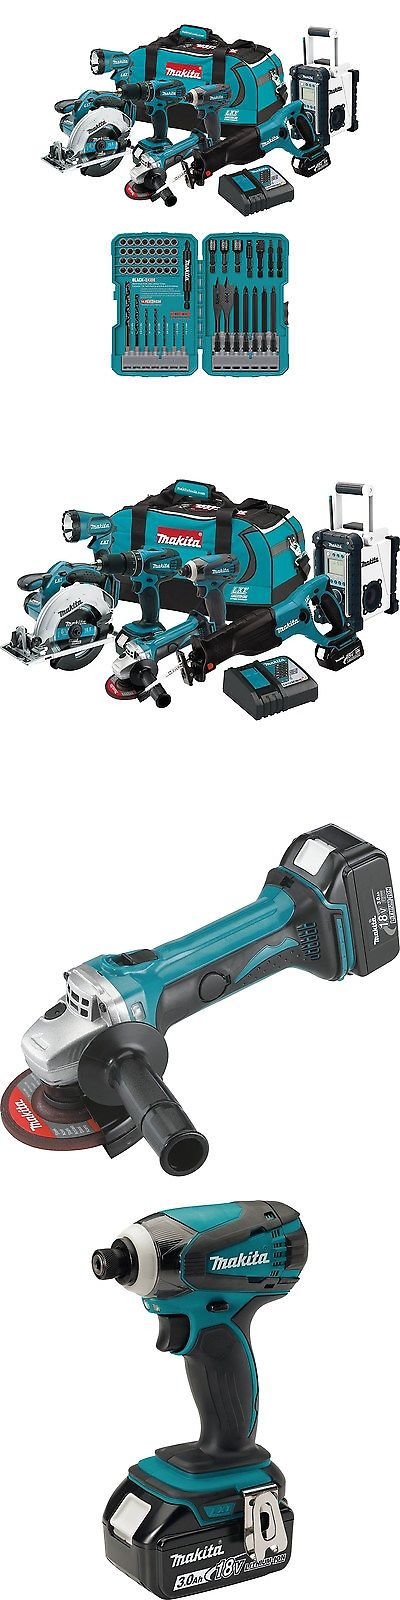 Drill Bits 50382: Makita 18V Lxt Lithium Ion 7 Pc. Combo Tool Kit W 3.0 Ah Batteries + Bit Set -> BUY IT NOW ONLY: $635.99 on eBay!